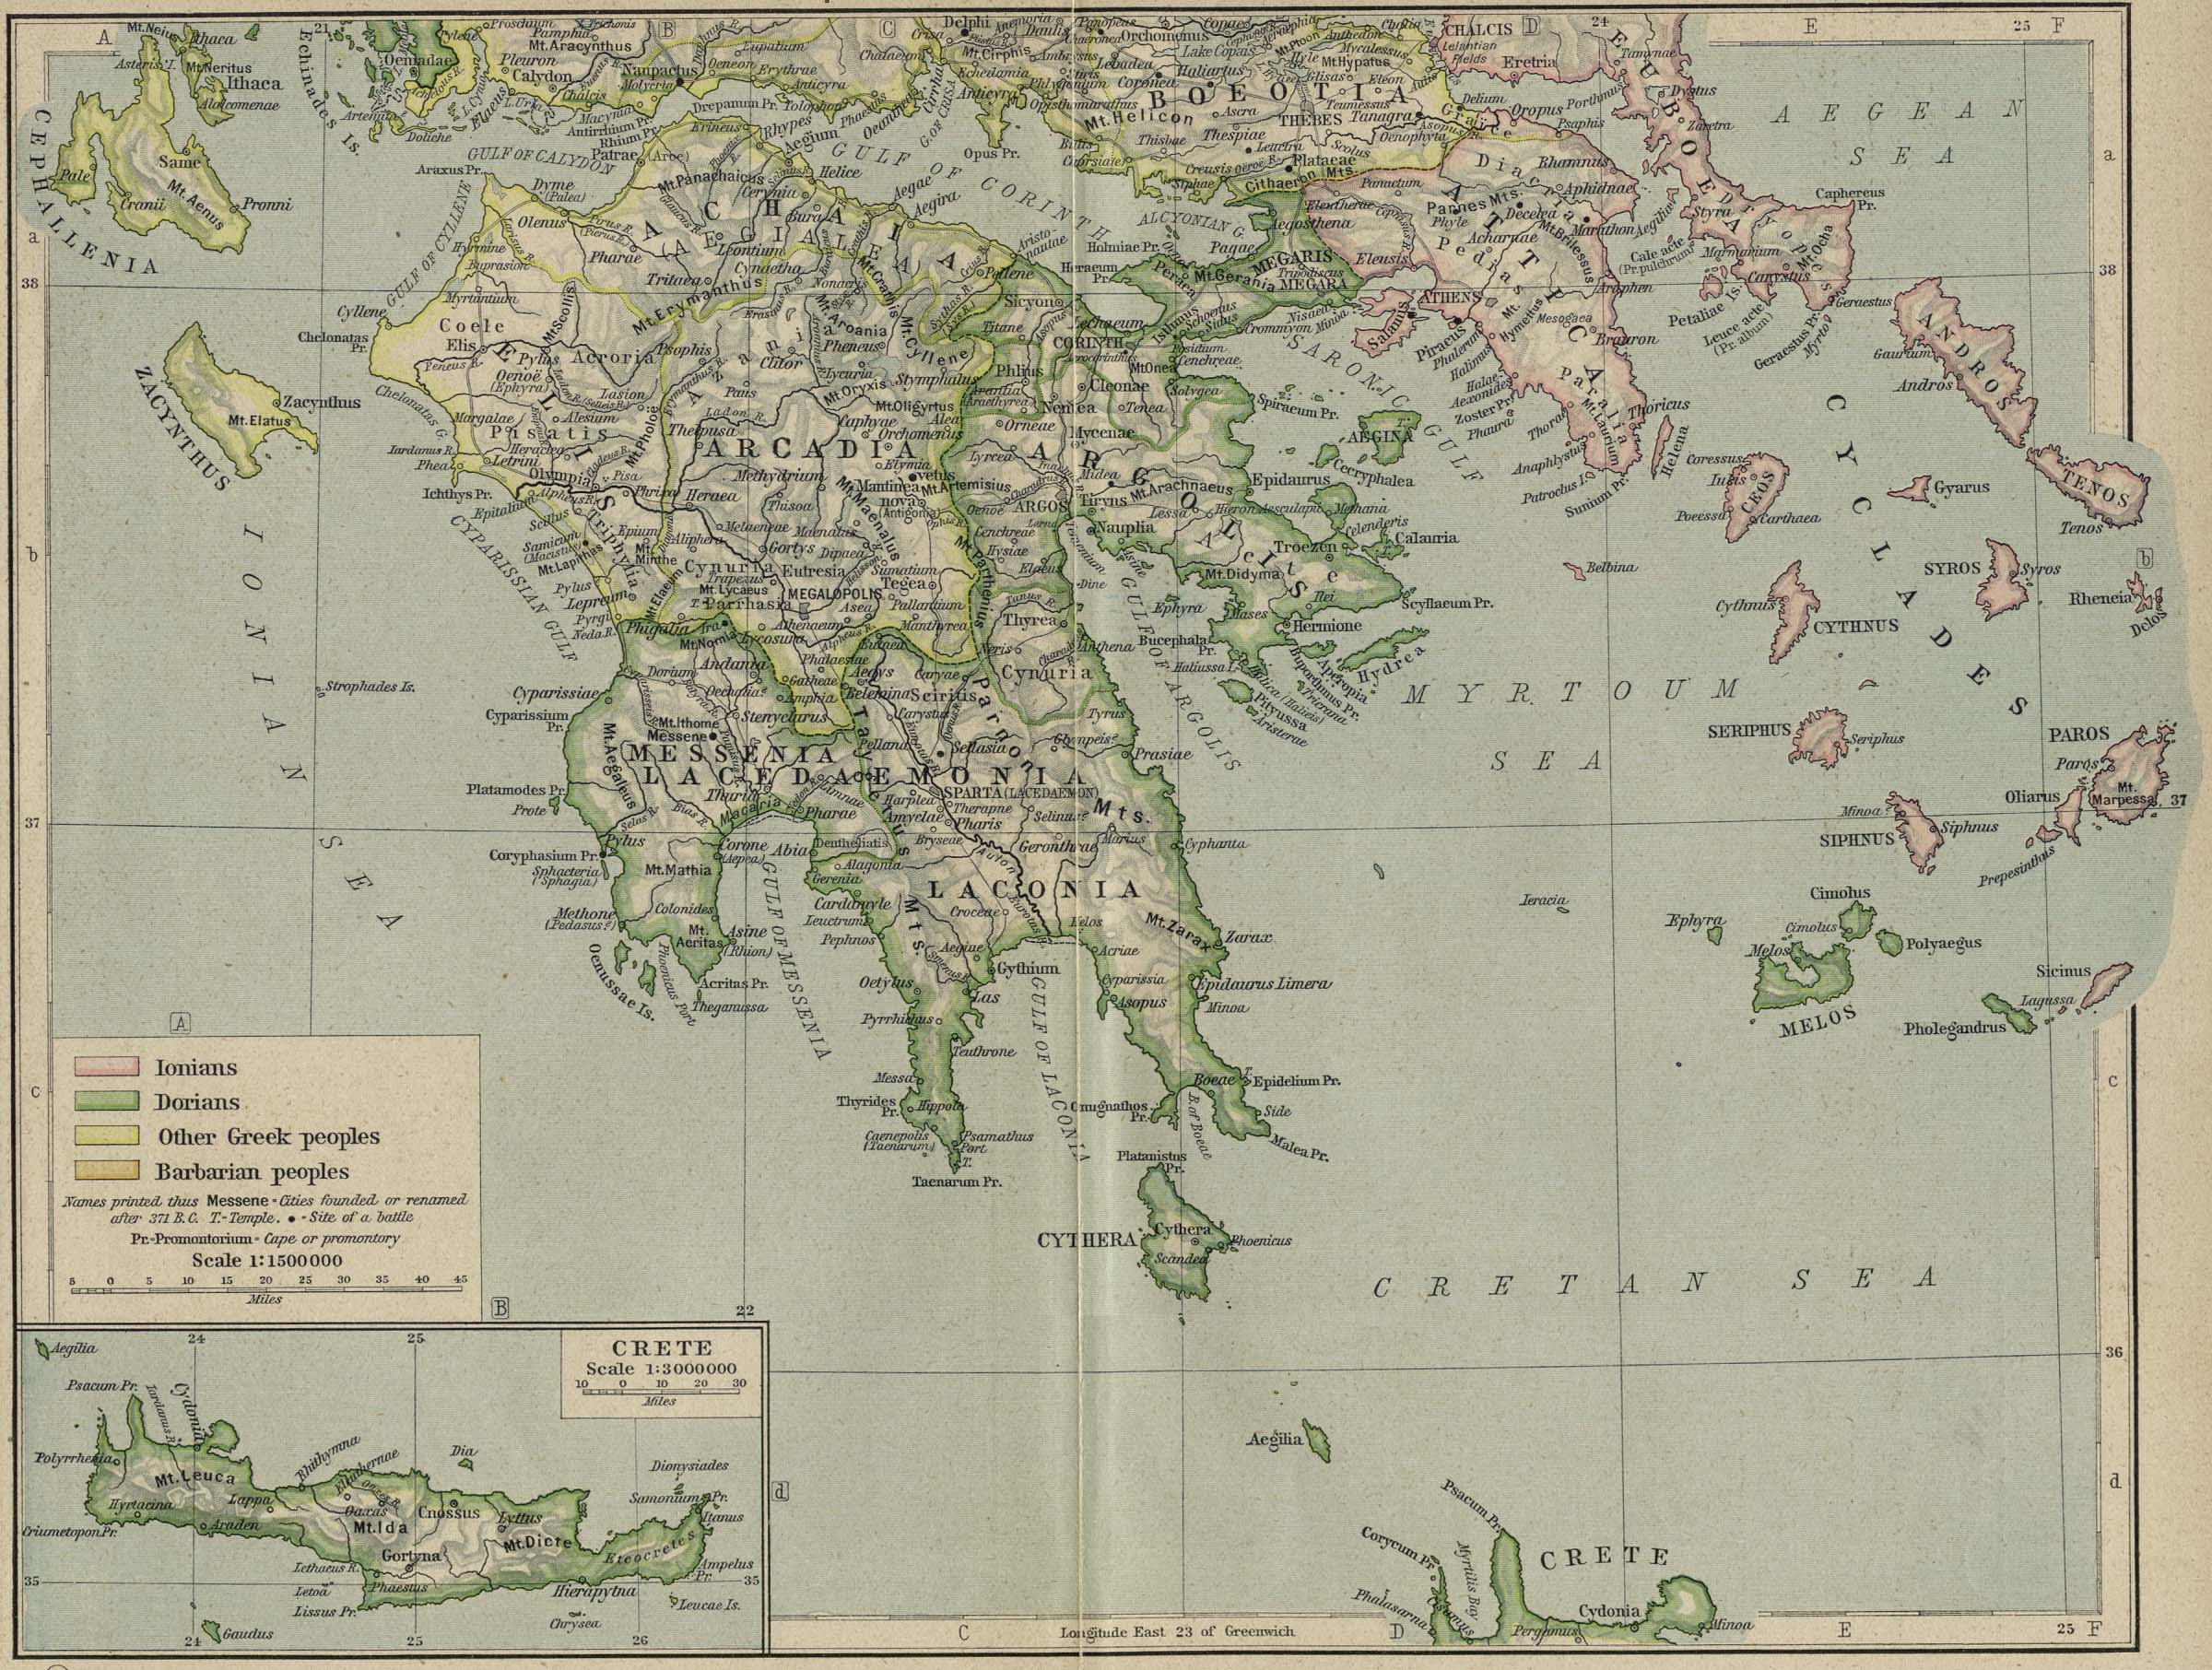 Map of Southern Greece403 BC - AD 180with inset of Crete